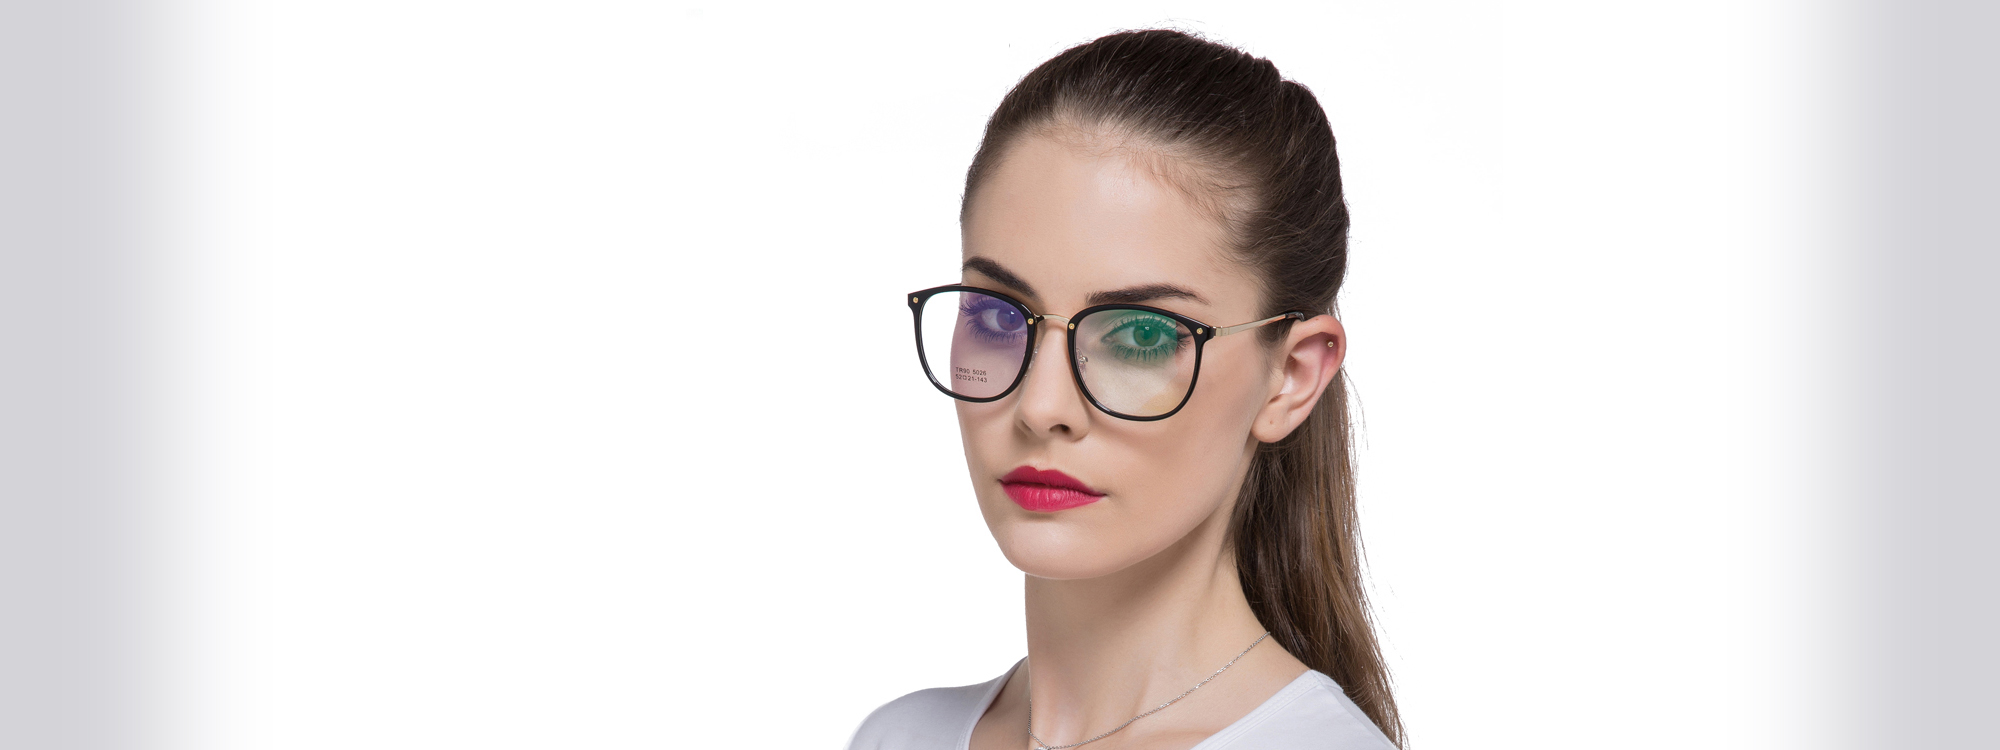 c248d39f608f Avenue Optical - Opticians Brampton - Optometrist and Eye Doctor Brampton - Best  Optical Store - Low Cost Colored Contact Lenses Bampton - Bifocal Glasses  ...